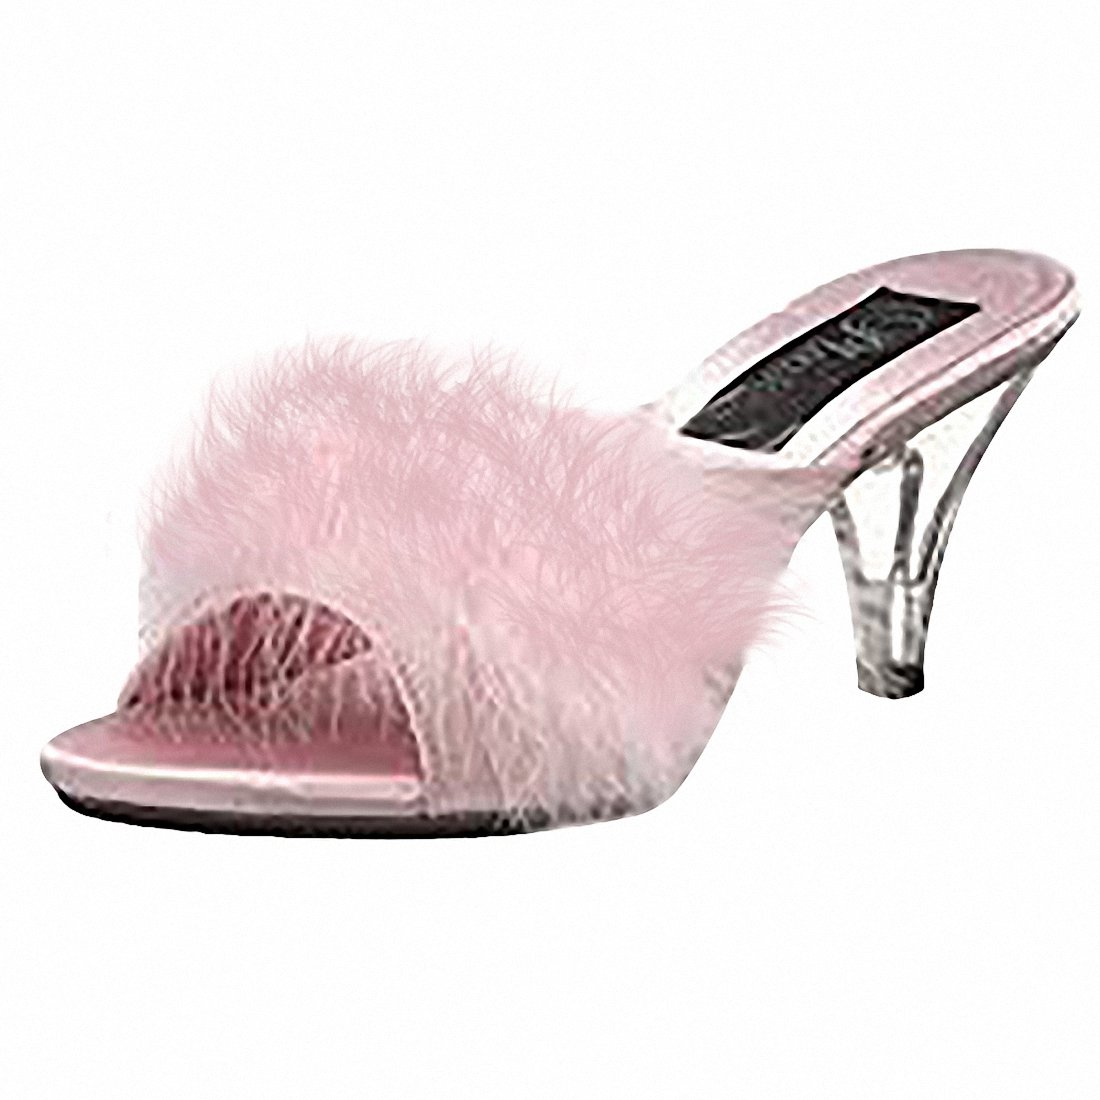 Pleaser Fabulicious BELLE-301F Women Sandal B074F31W1Z Satin-fur/Clear 9 B(M) US|Baby Pink Satin-fur/Clear B074F31W1Z 7fb219